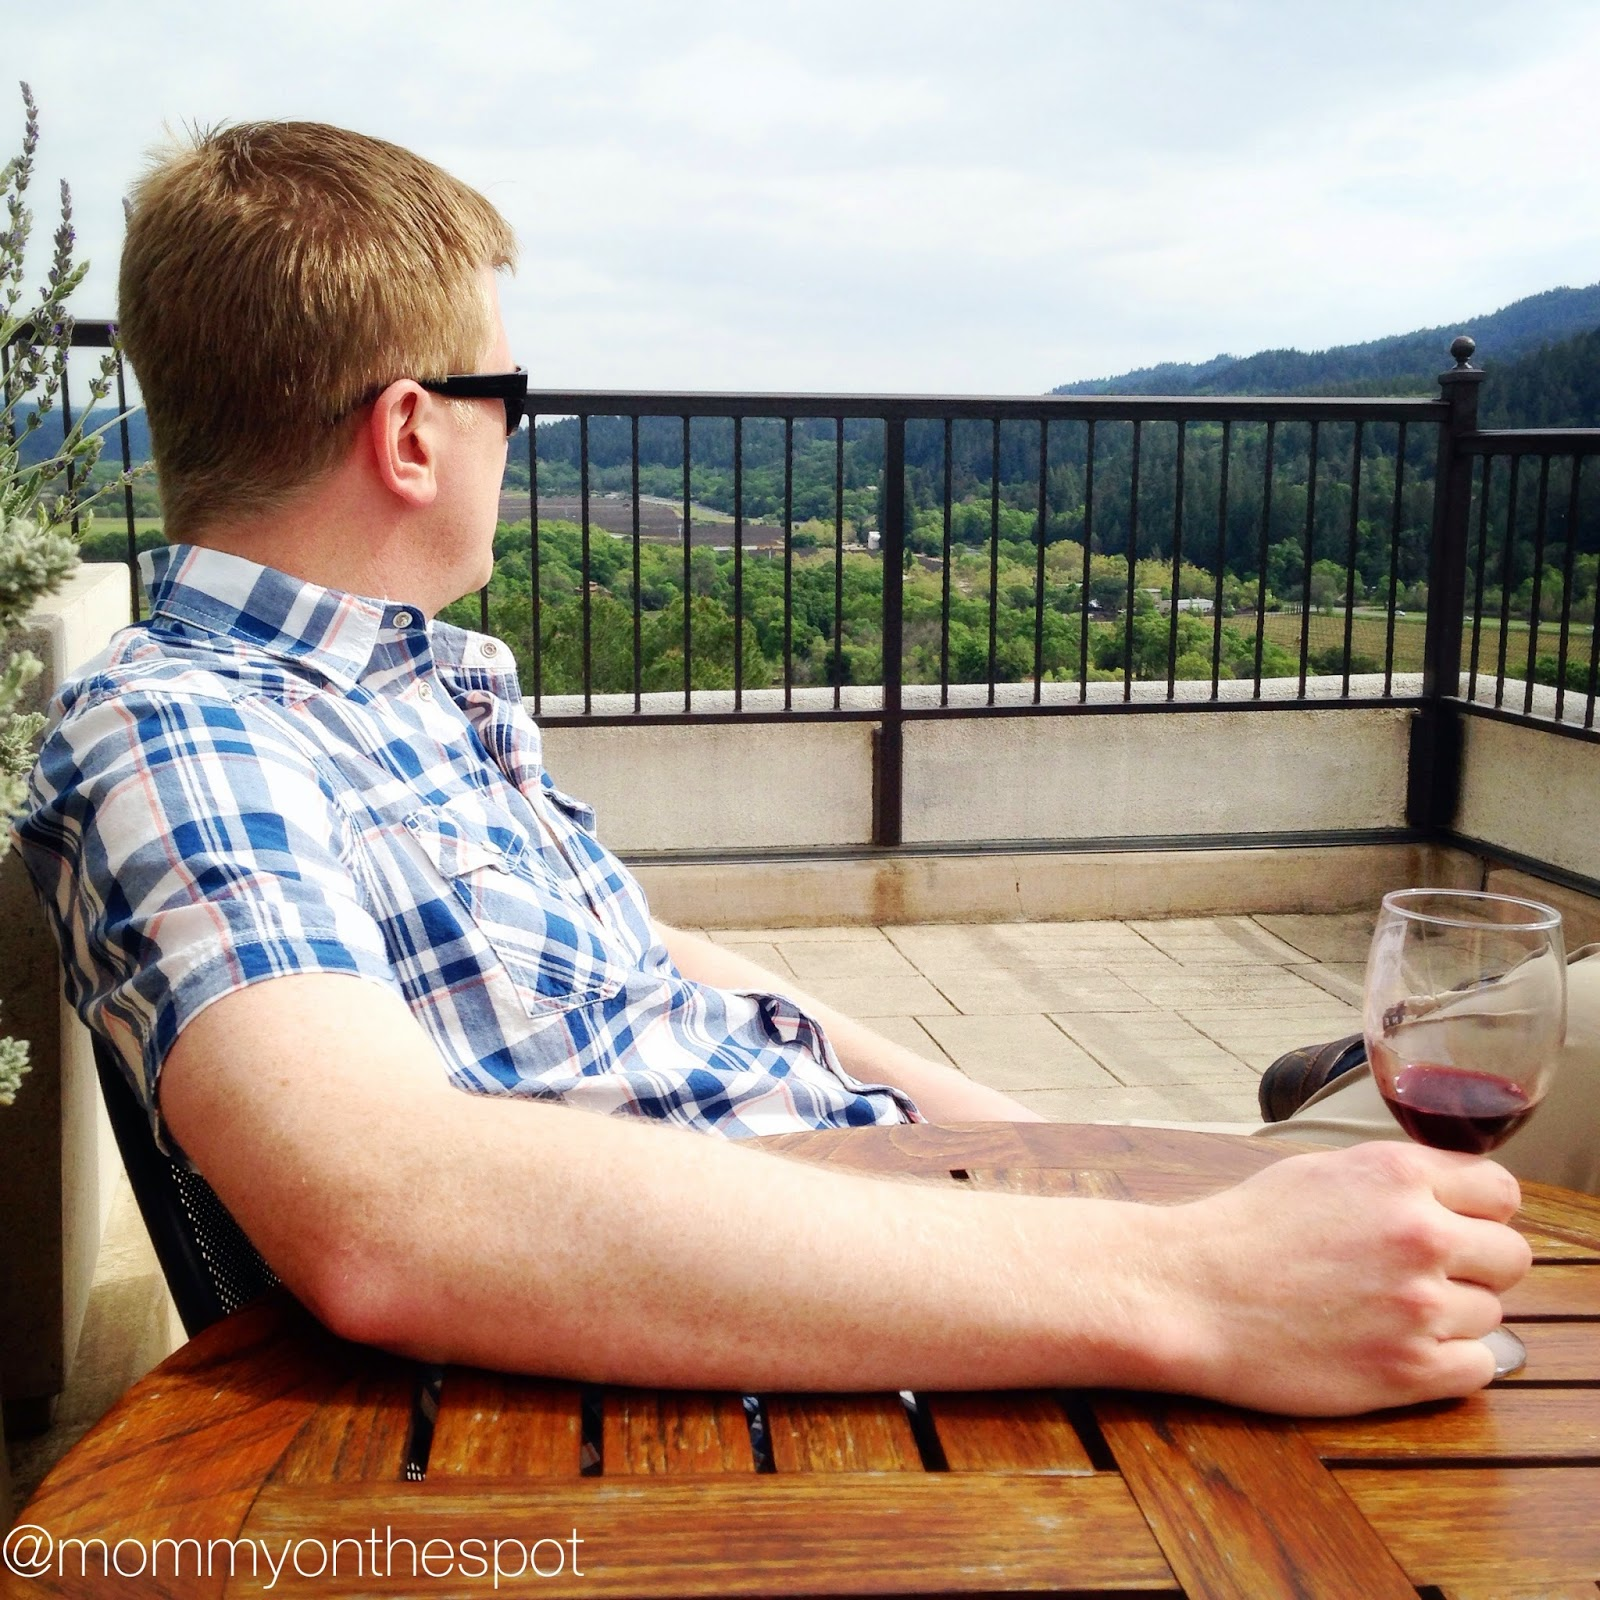 Erin Janda Rawlings Mommy on the Spot Napa Valley Reflections on Traveling without the Kids